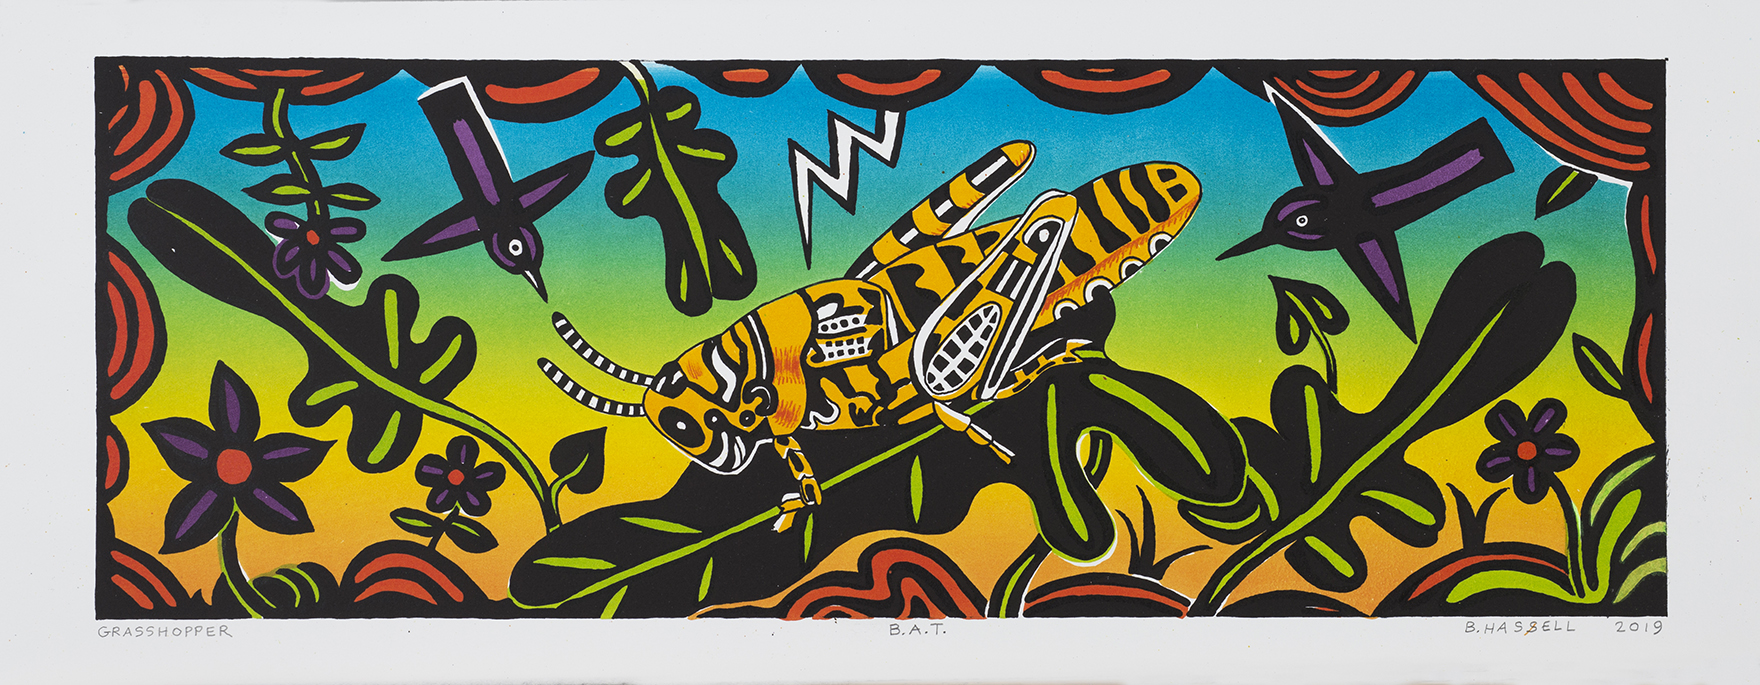 """Billy Hassell GRASSHOPPER color lithograph  8.5"""" x 24"""""""